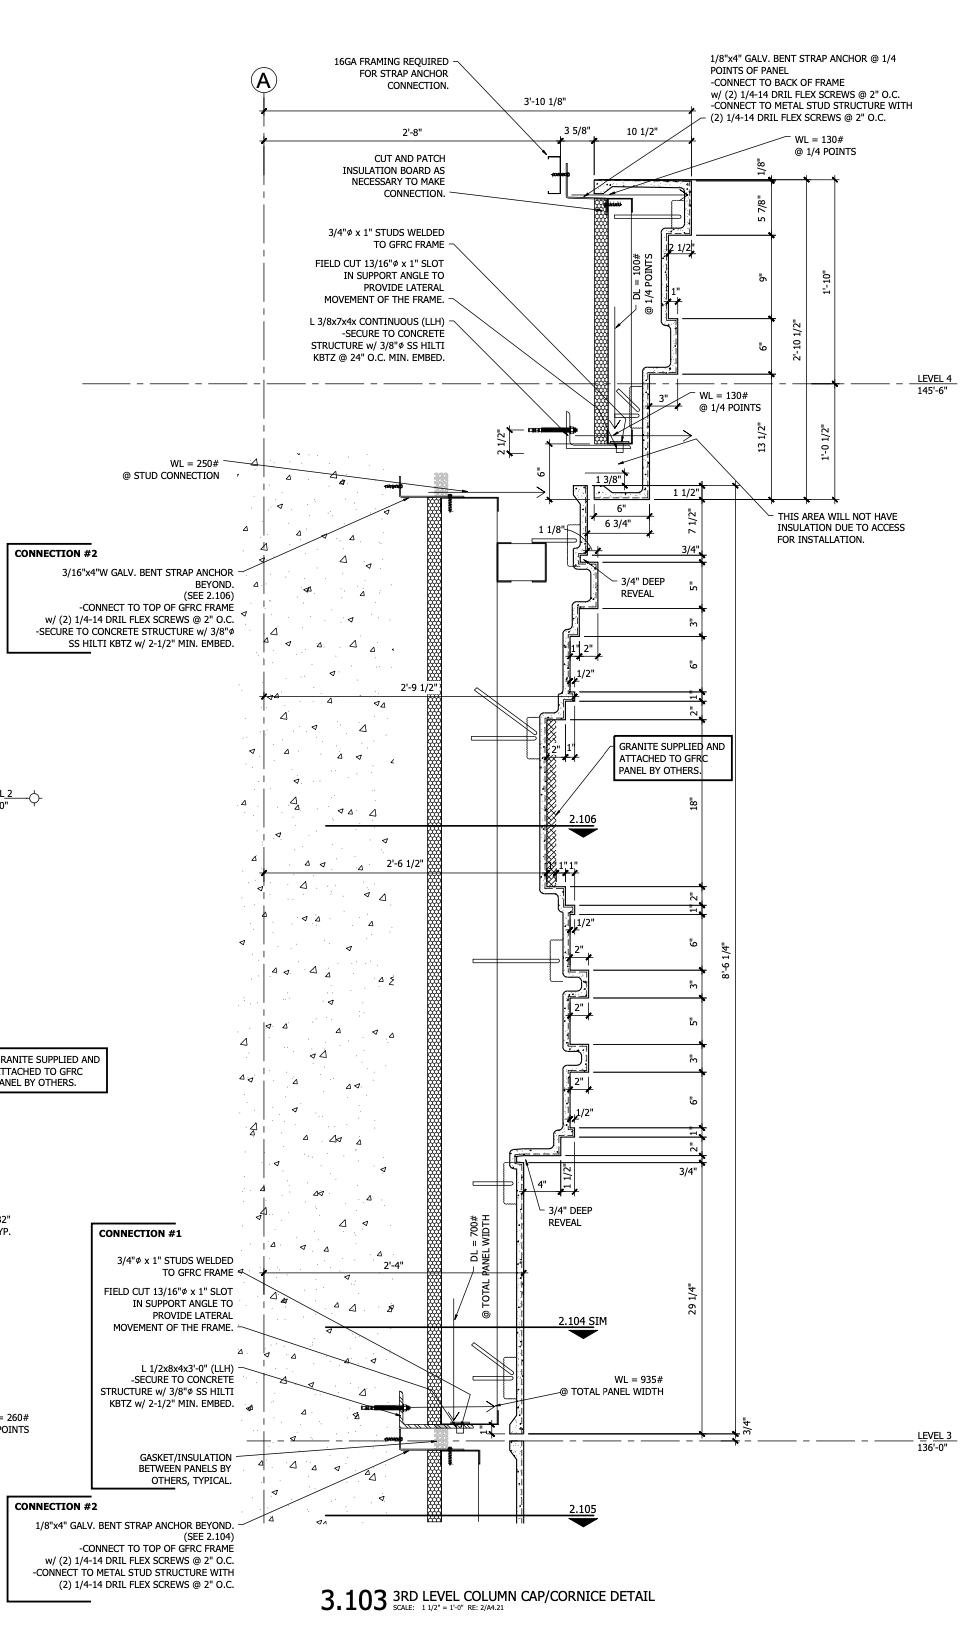 Marriott Hotel CAD Drawing - Section 3_103 - third level column cap and cornice detail